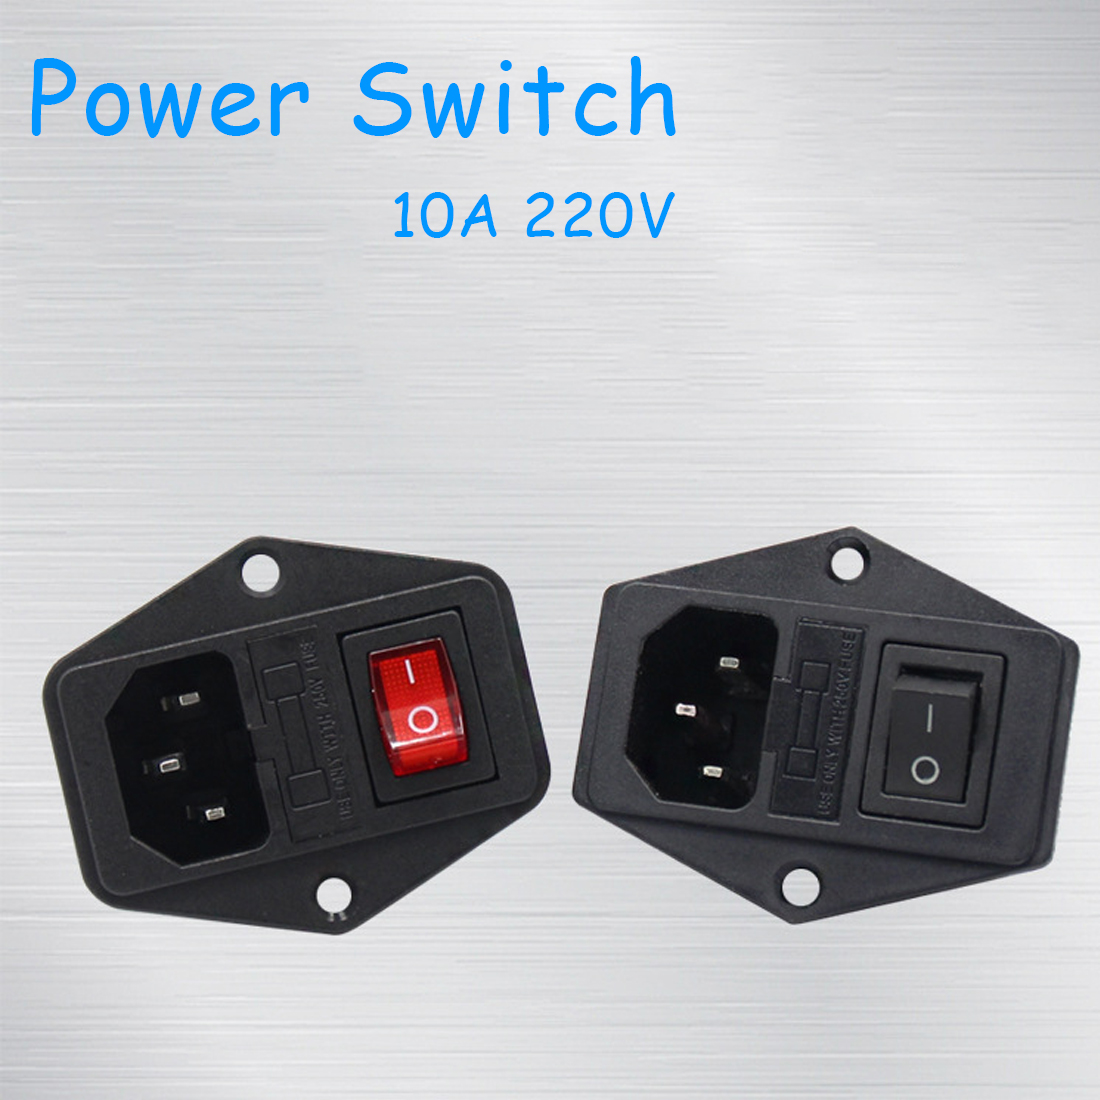 Etmakit <font><b>10A</b></font> <font><b>220V</b></font> Power Switch AC Part For Makerbot For Ultimaker 3 in 1 <font><b>Fuse</b></font> Supply Socket Outlet Triple 3D Printers Parts image